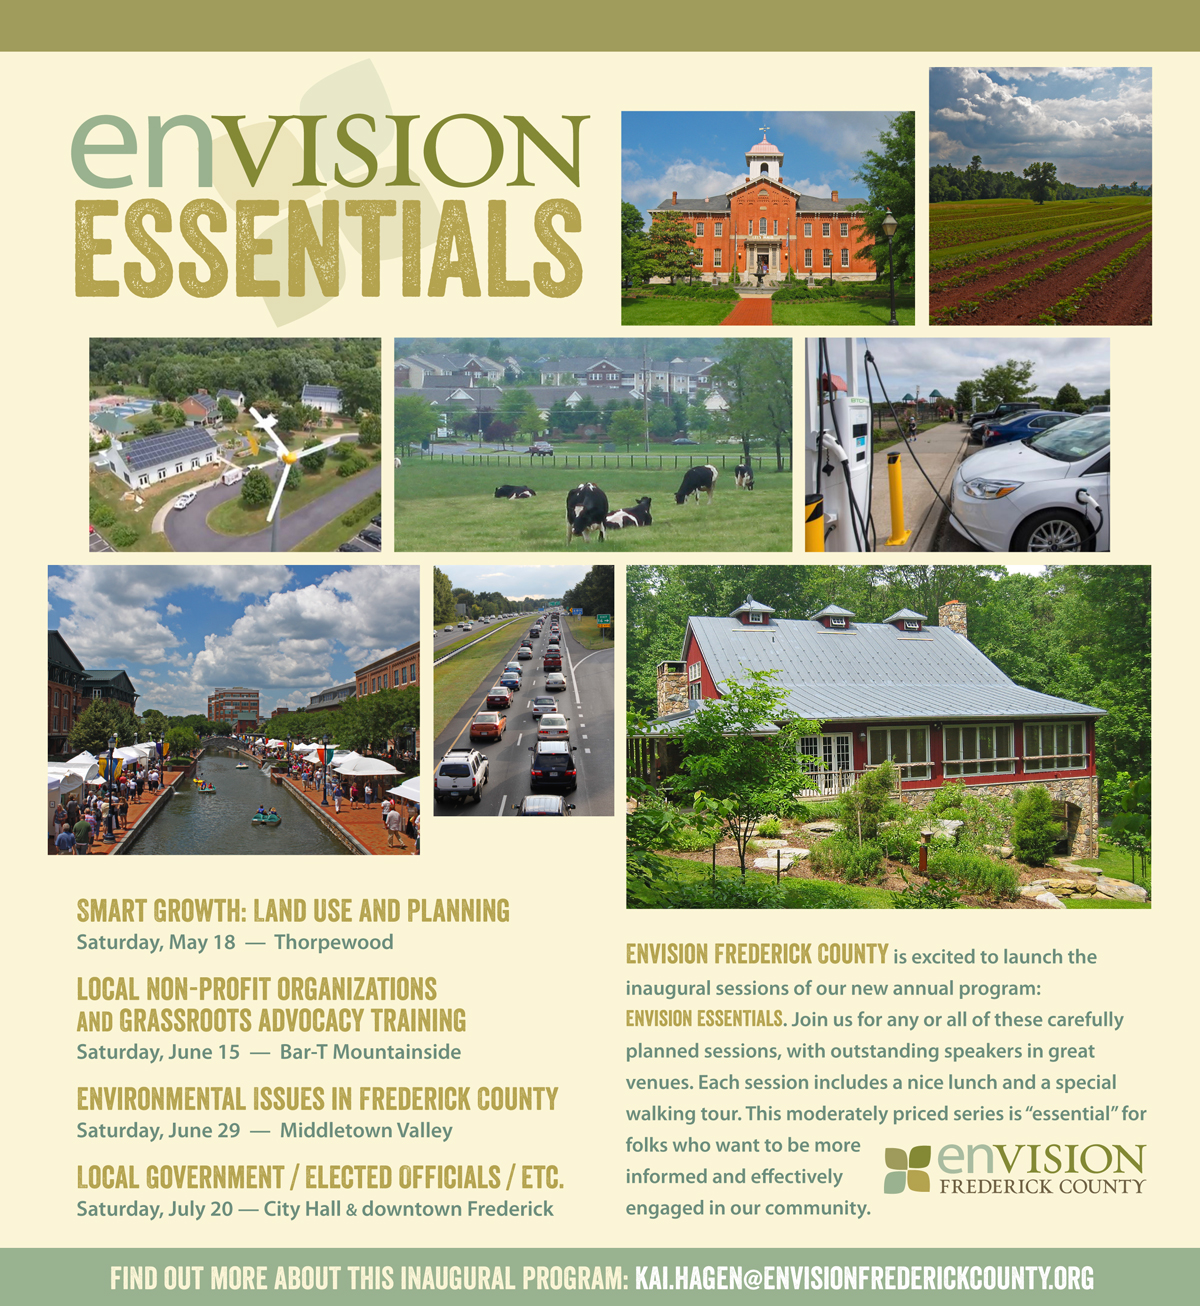 Envision Essentials